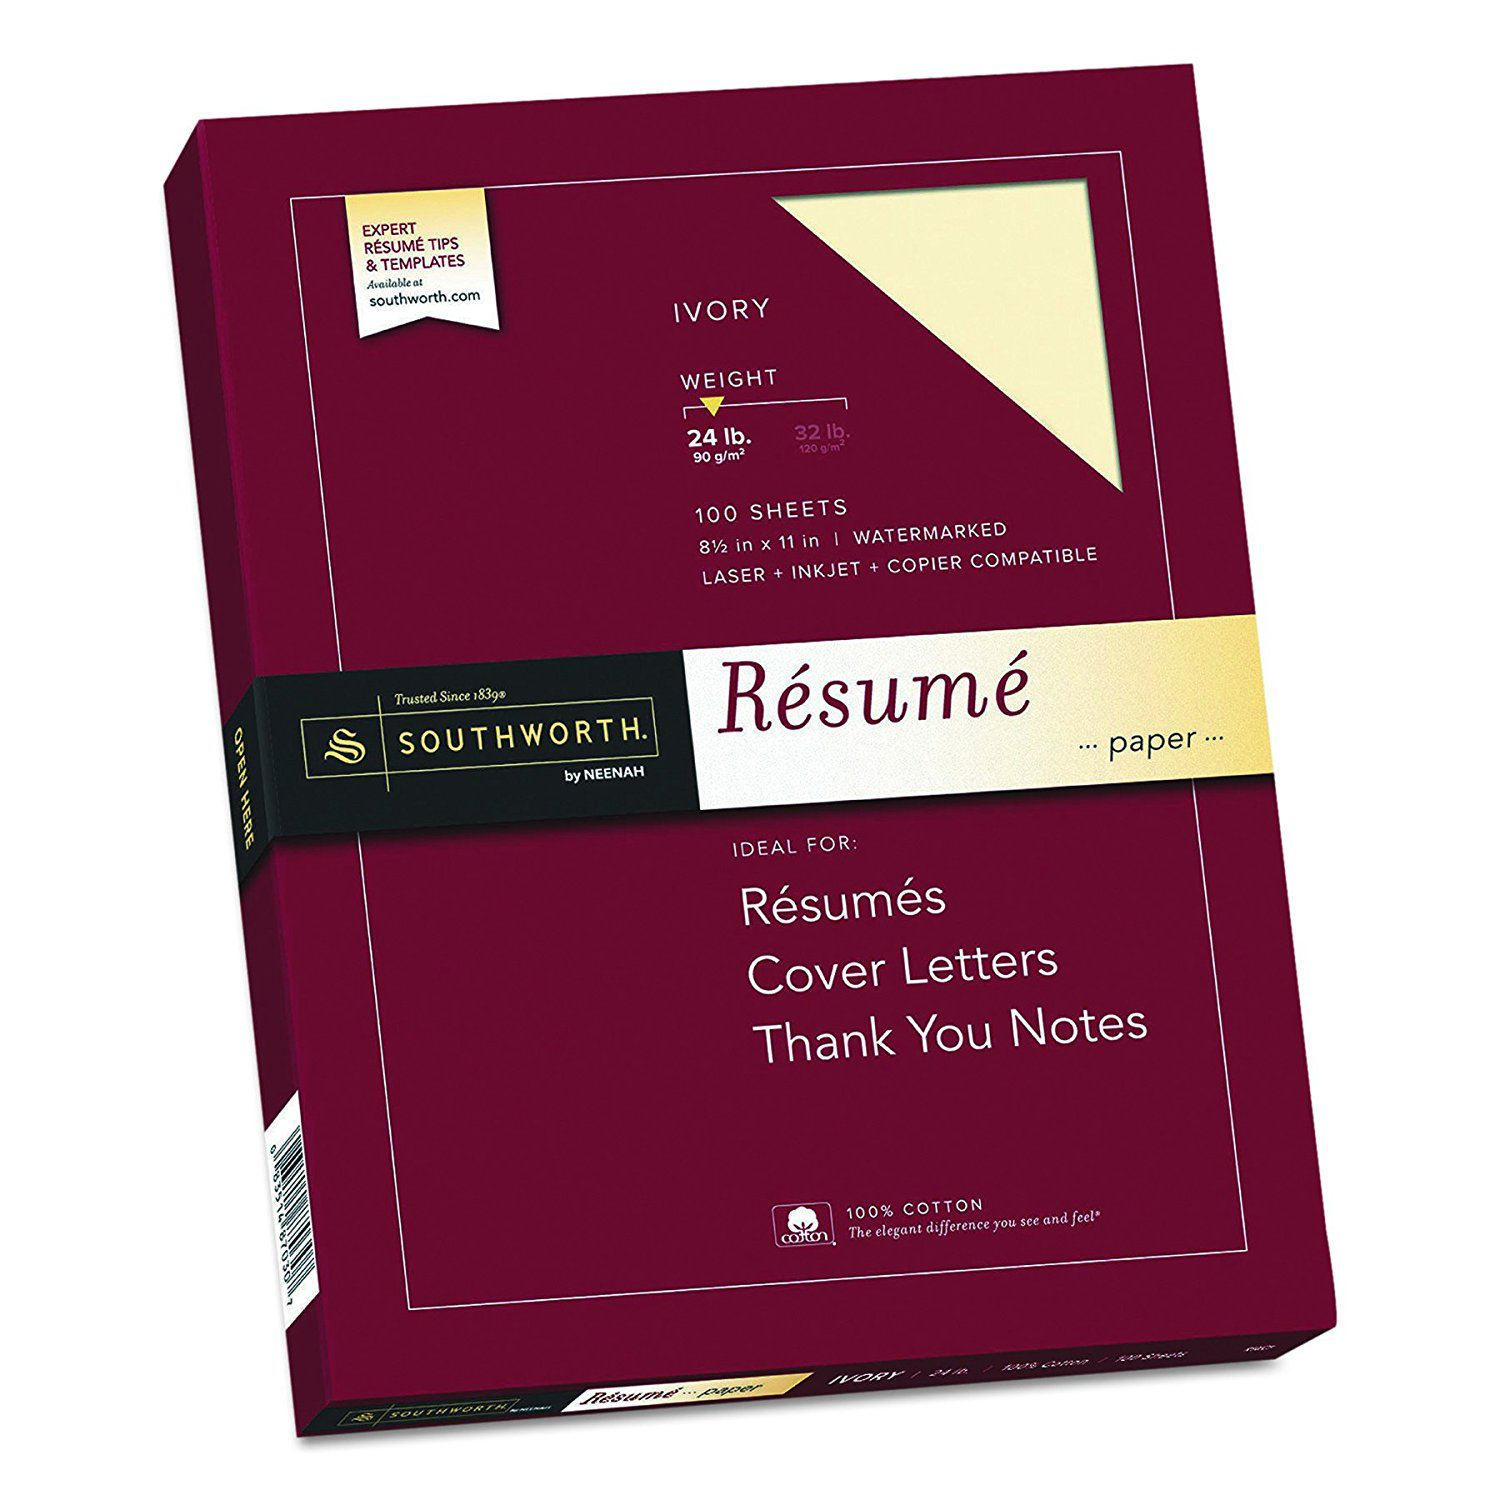 d5f5a49c205 The 8 Best Resume Paper Brands of 2019